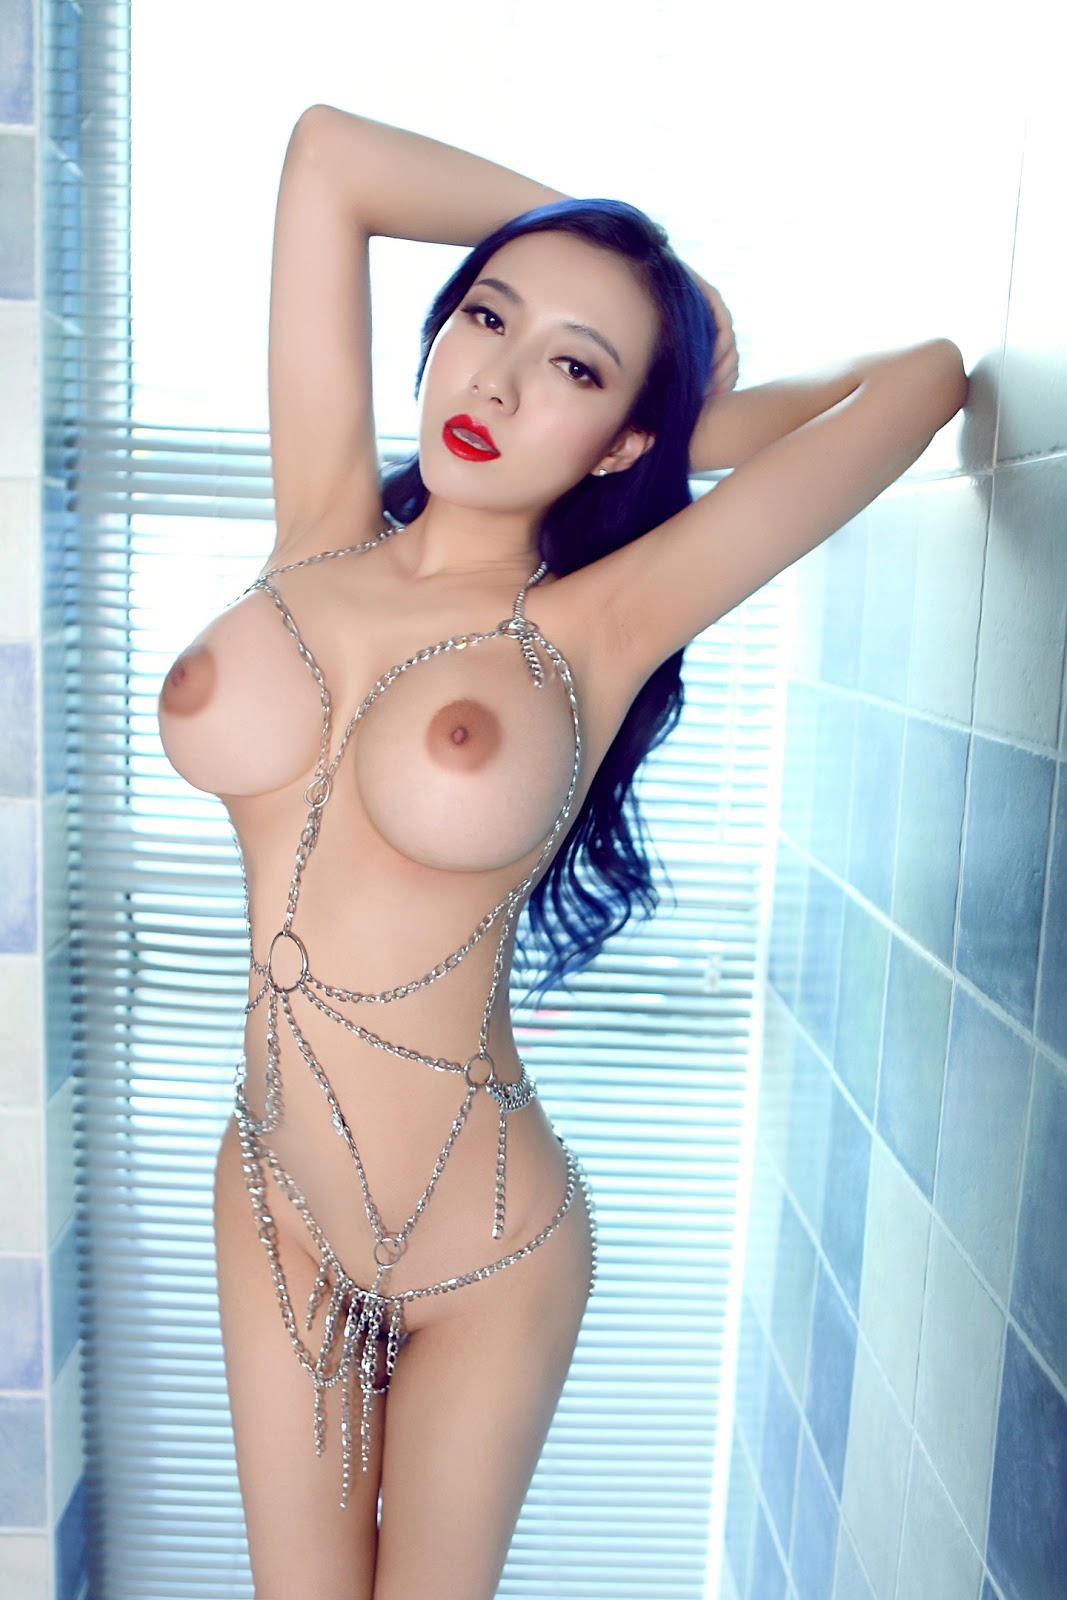 KPxfh8JaewM - Big tits chinese model song gue er hottes